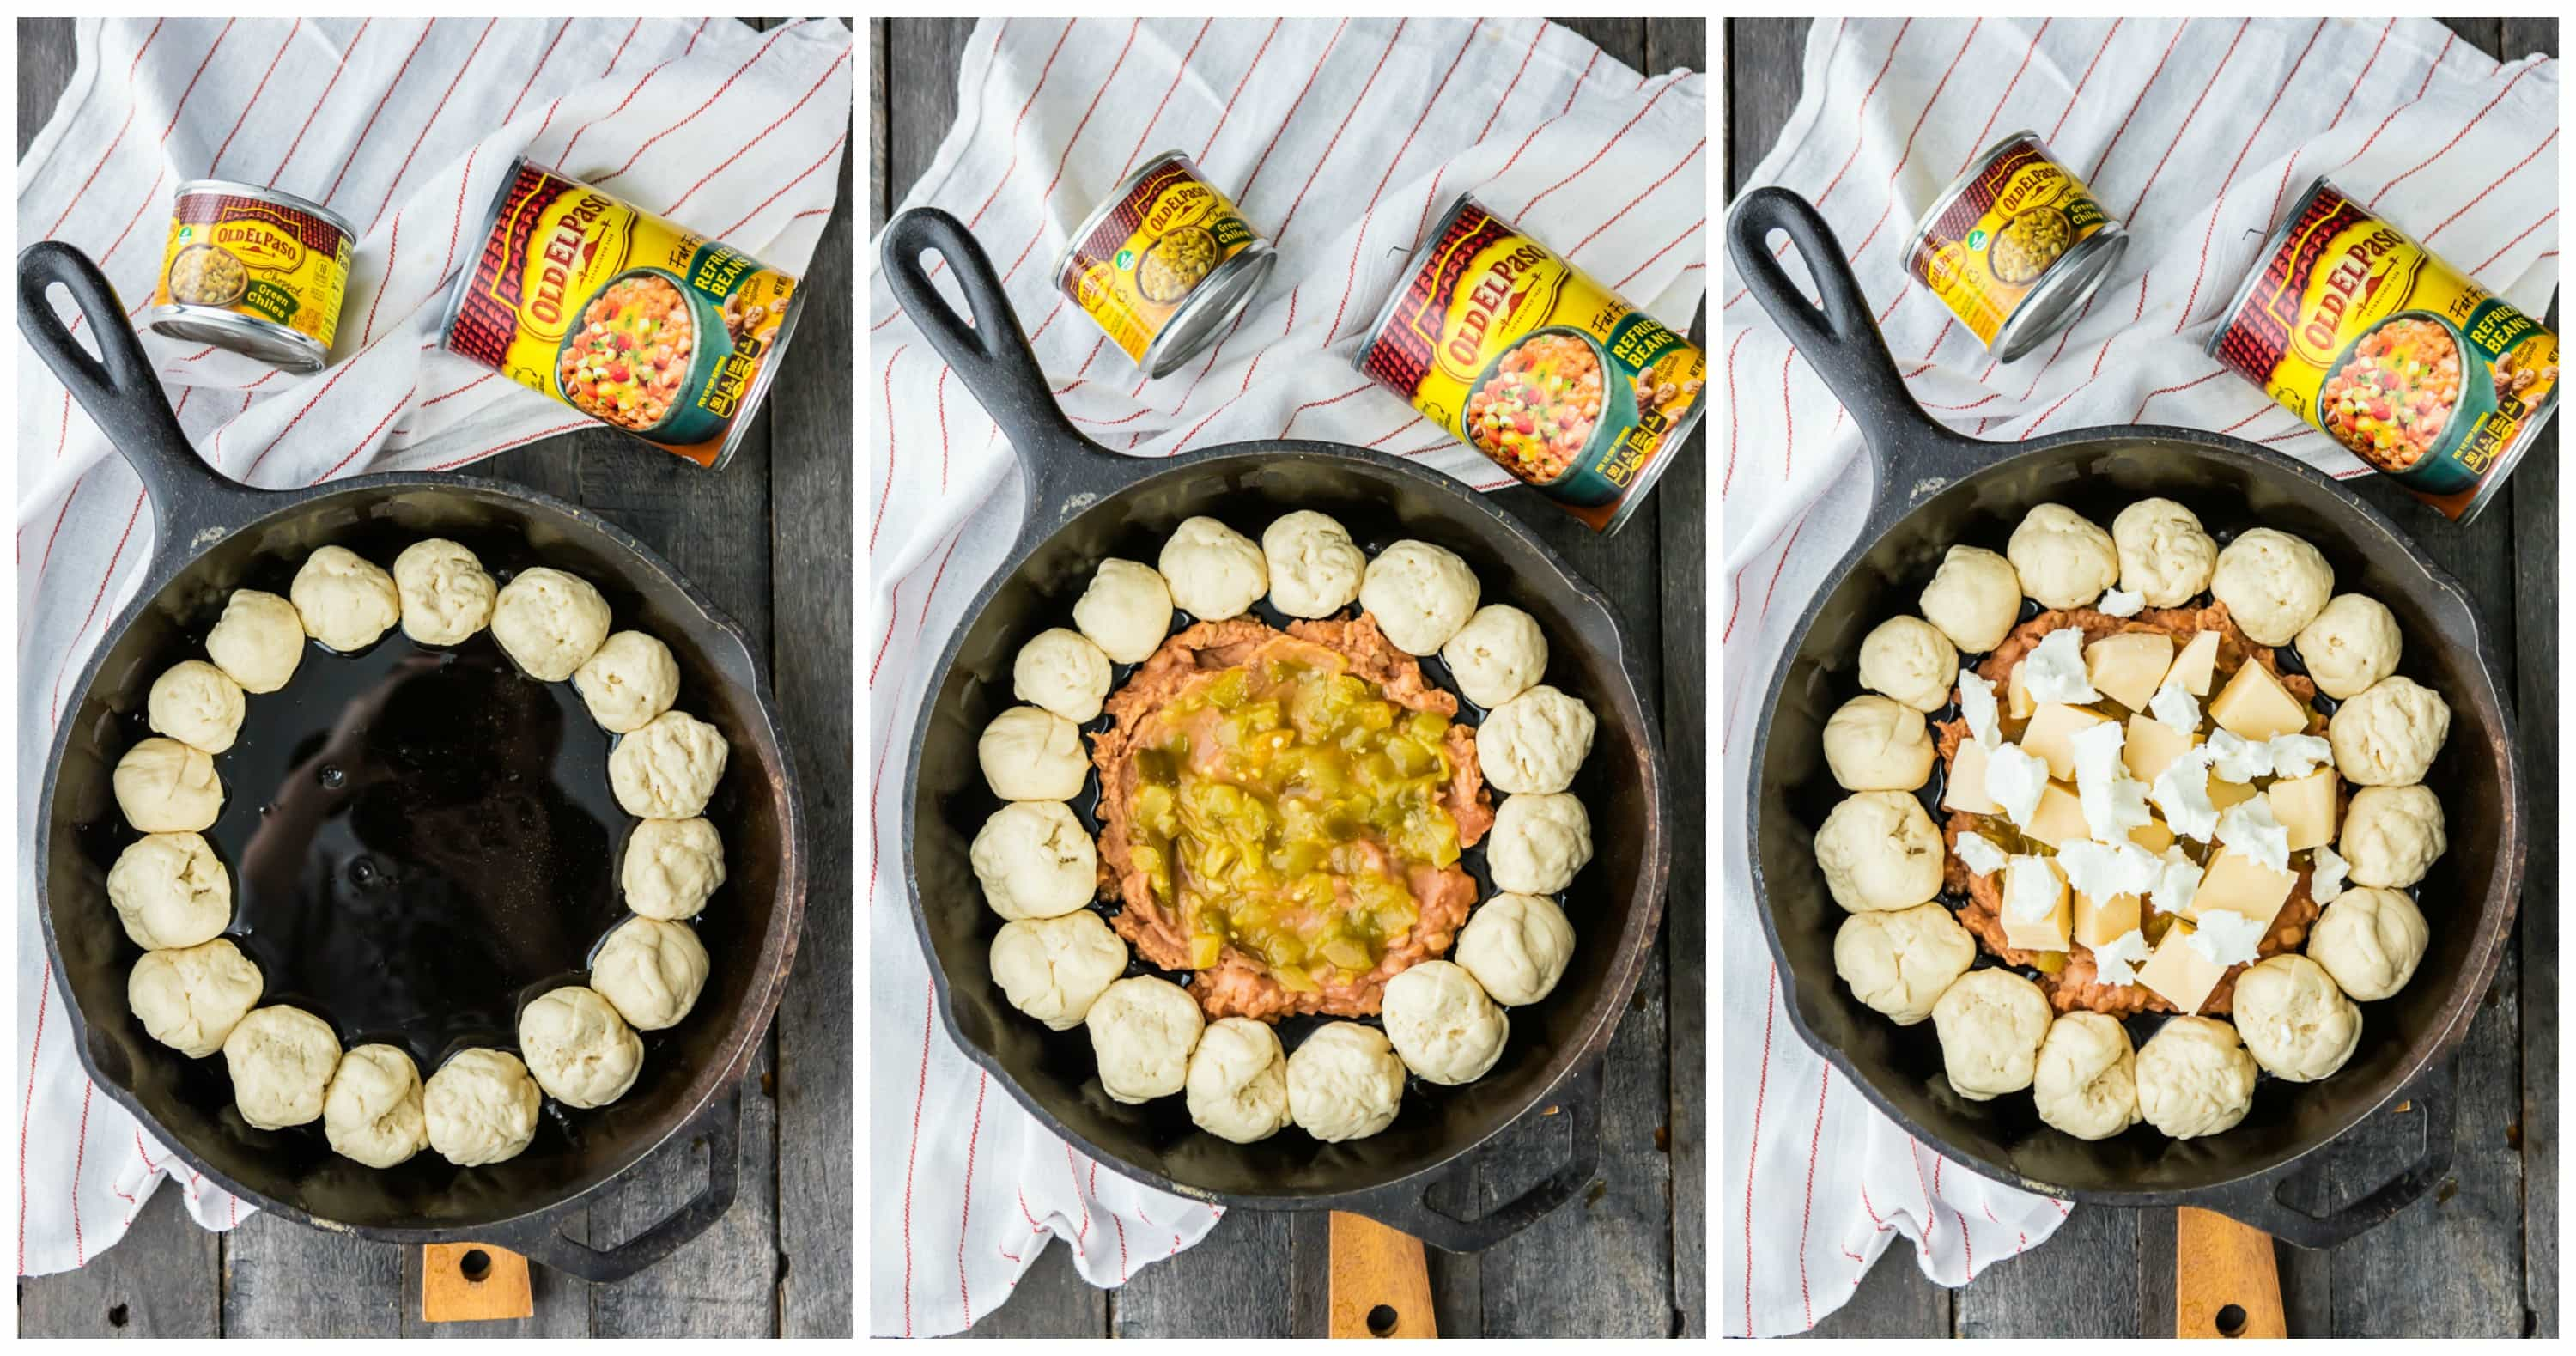 three pictures showoing how to prepare skillet bean and cheese dip with pull apart bread and Old El Paso cans